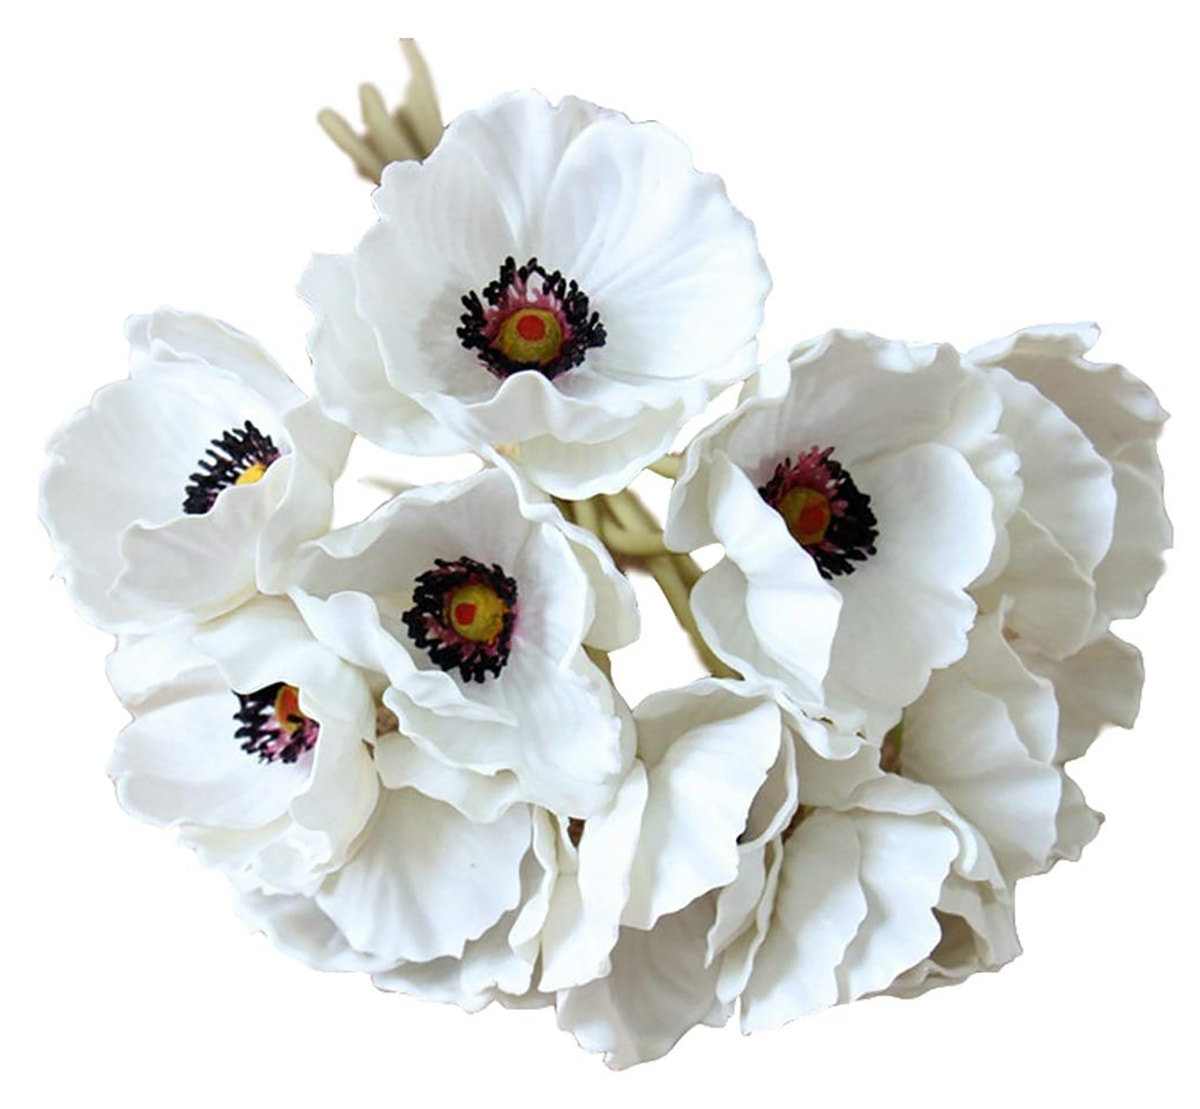 white faux poppy flowers used for Christmas rose DIY